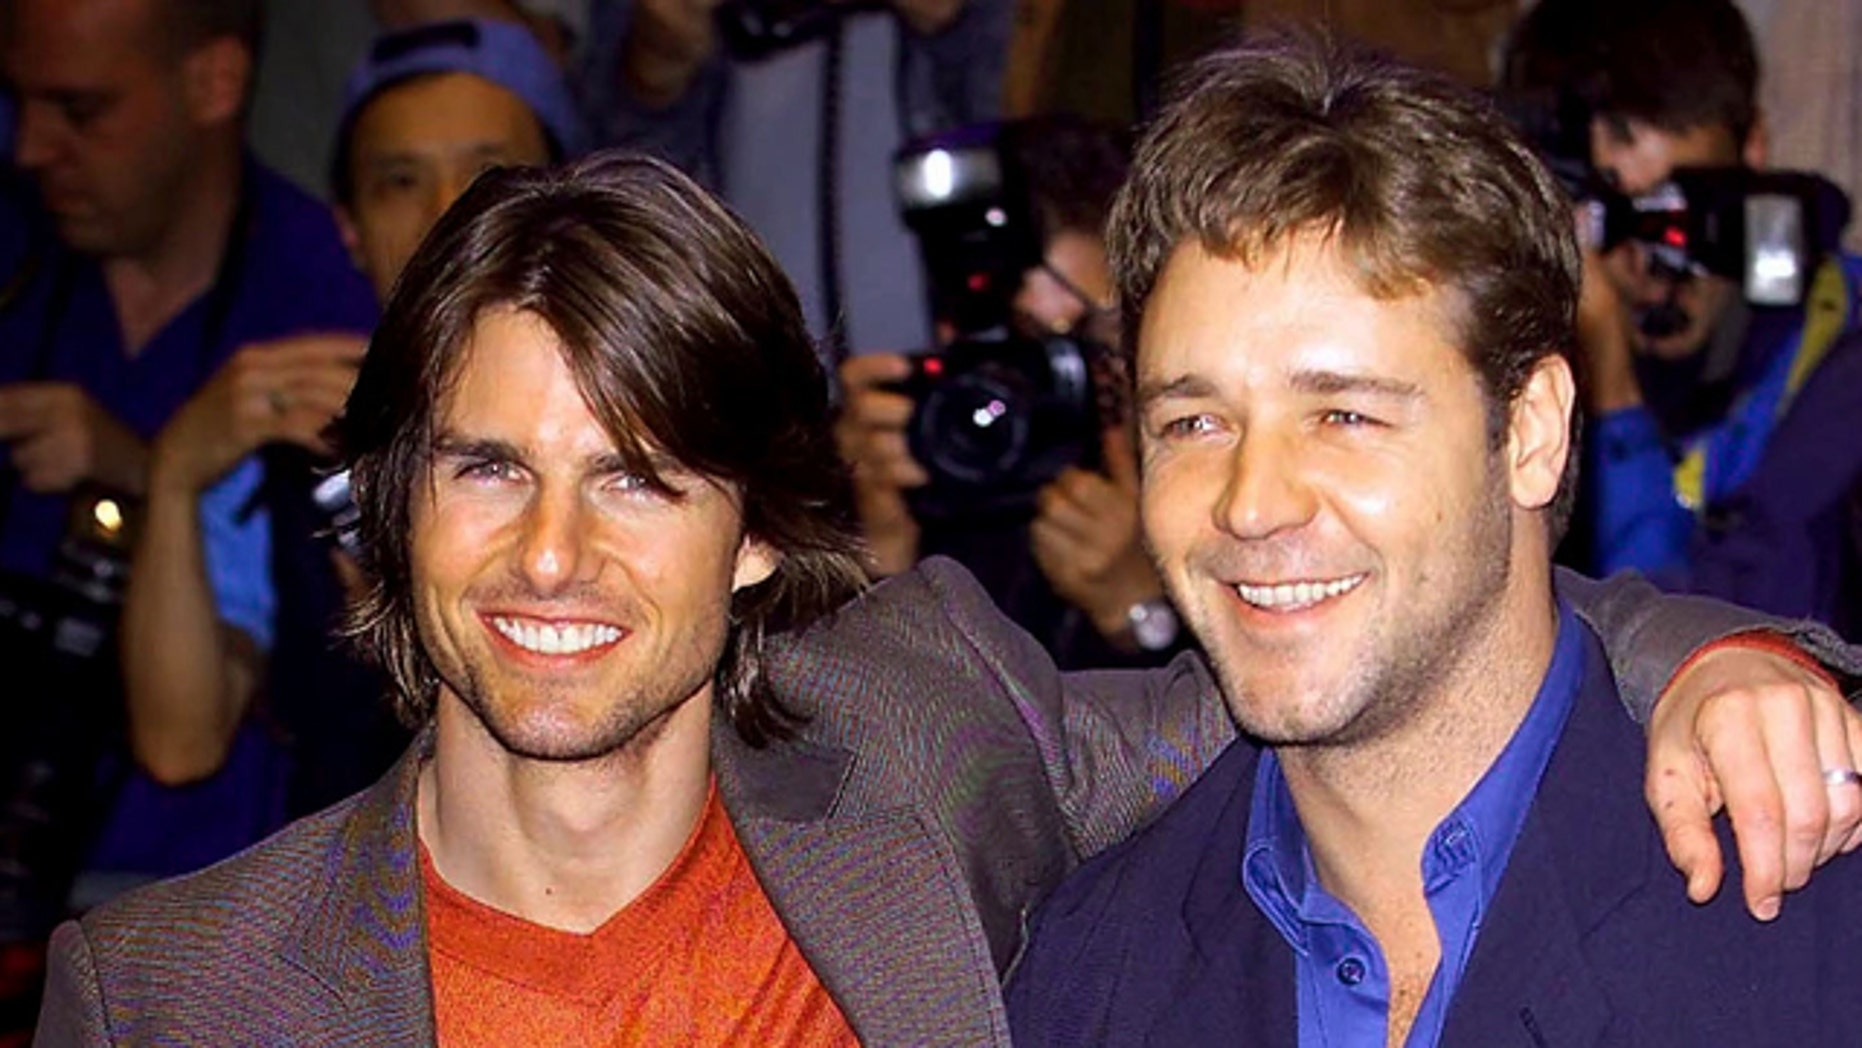 """4 July 2000. Film stars Tom Cruise (L) and Russell Crowe pose together as they arrive at the premiere of """"Mission Impossible Two"""" in central London."""